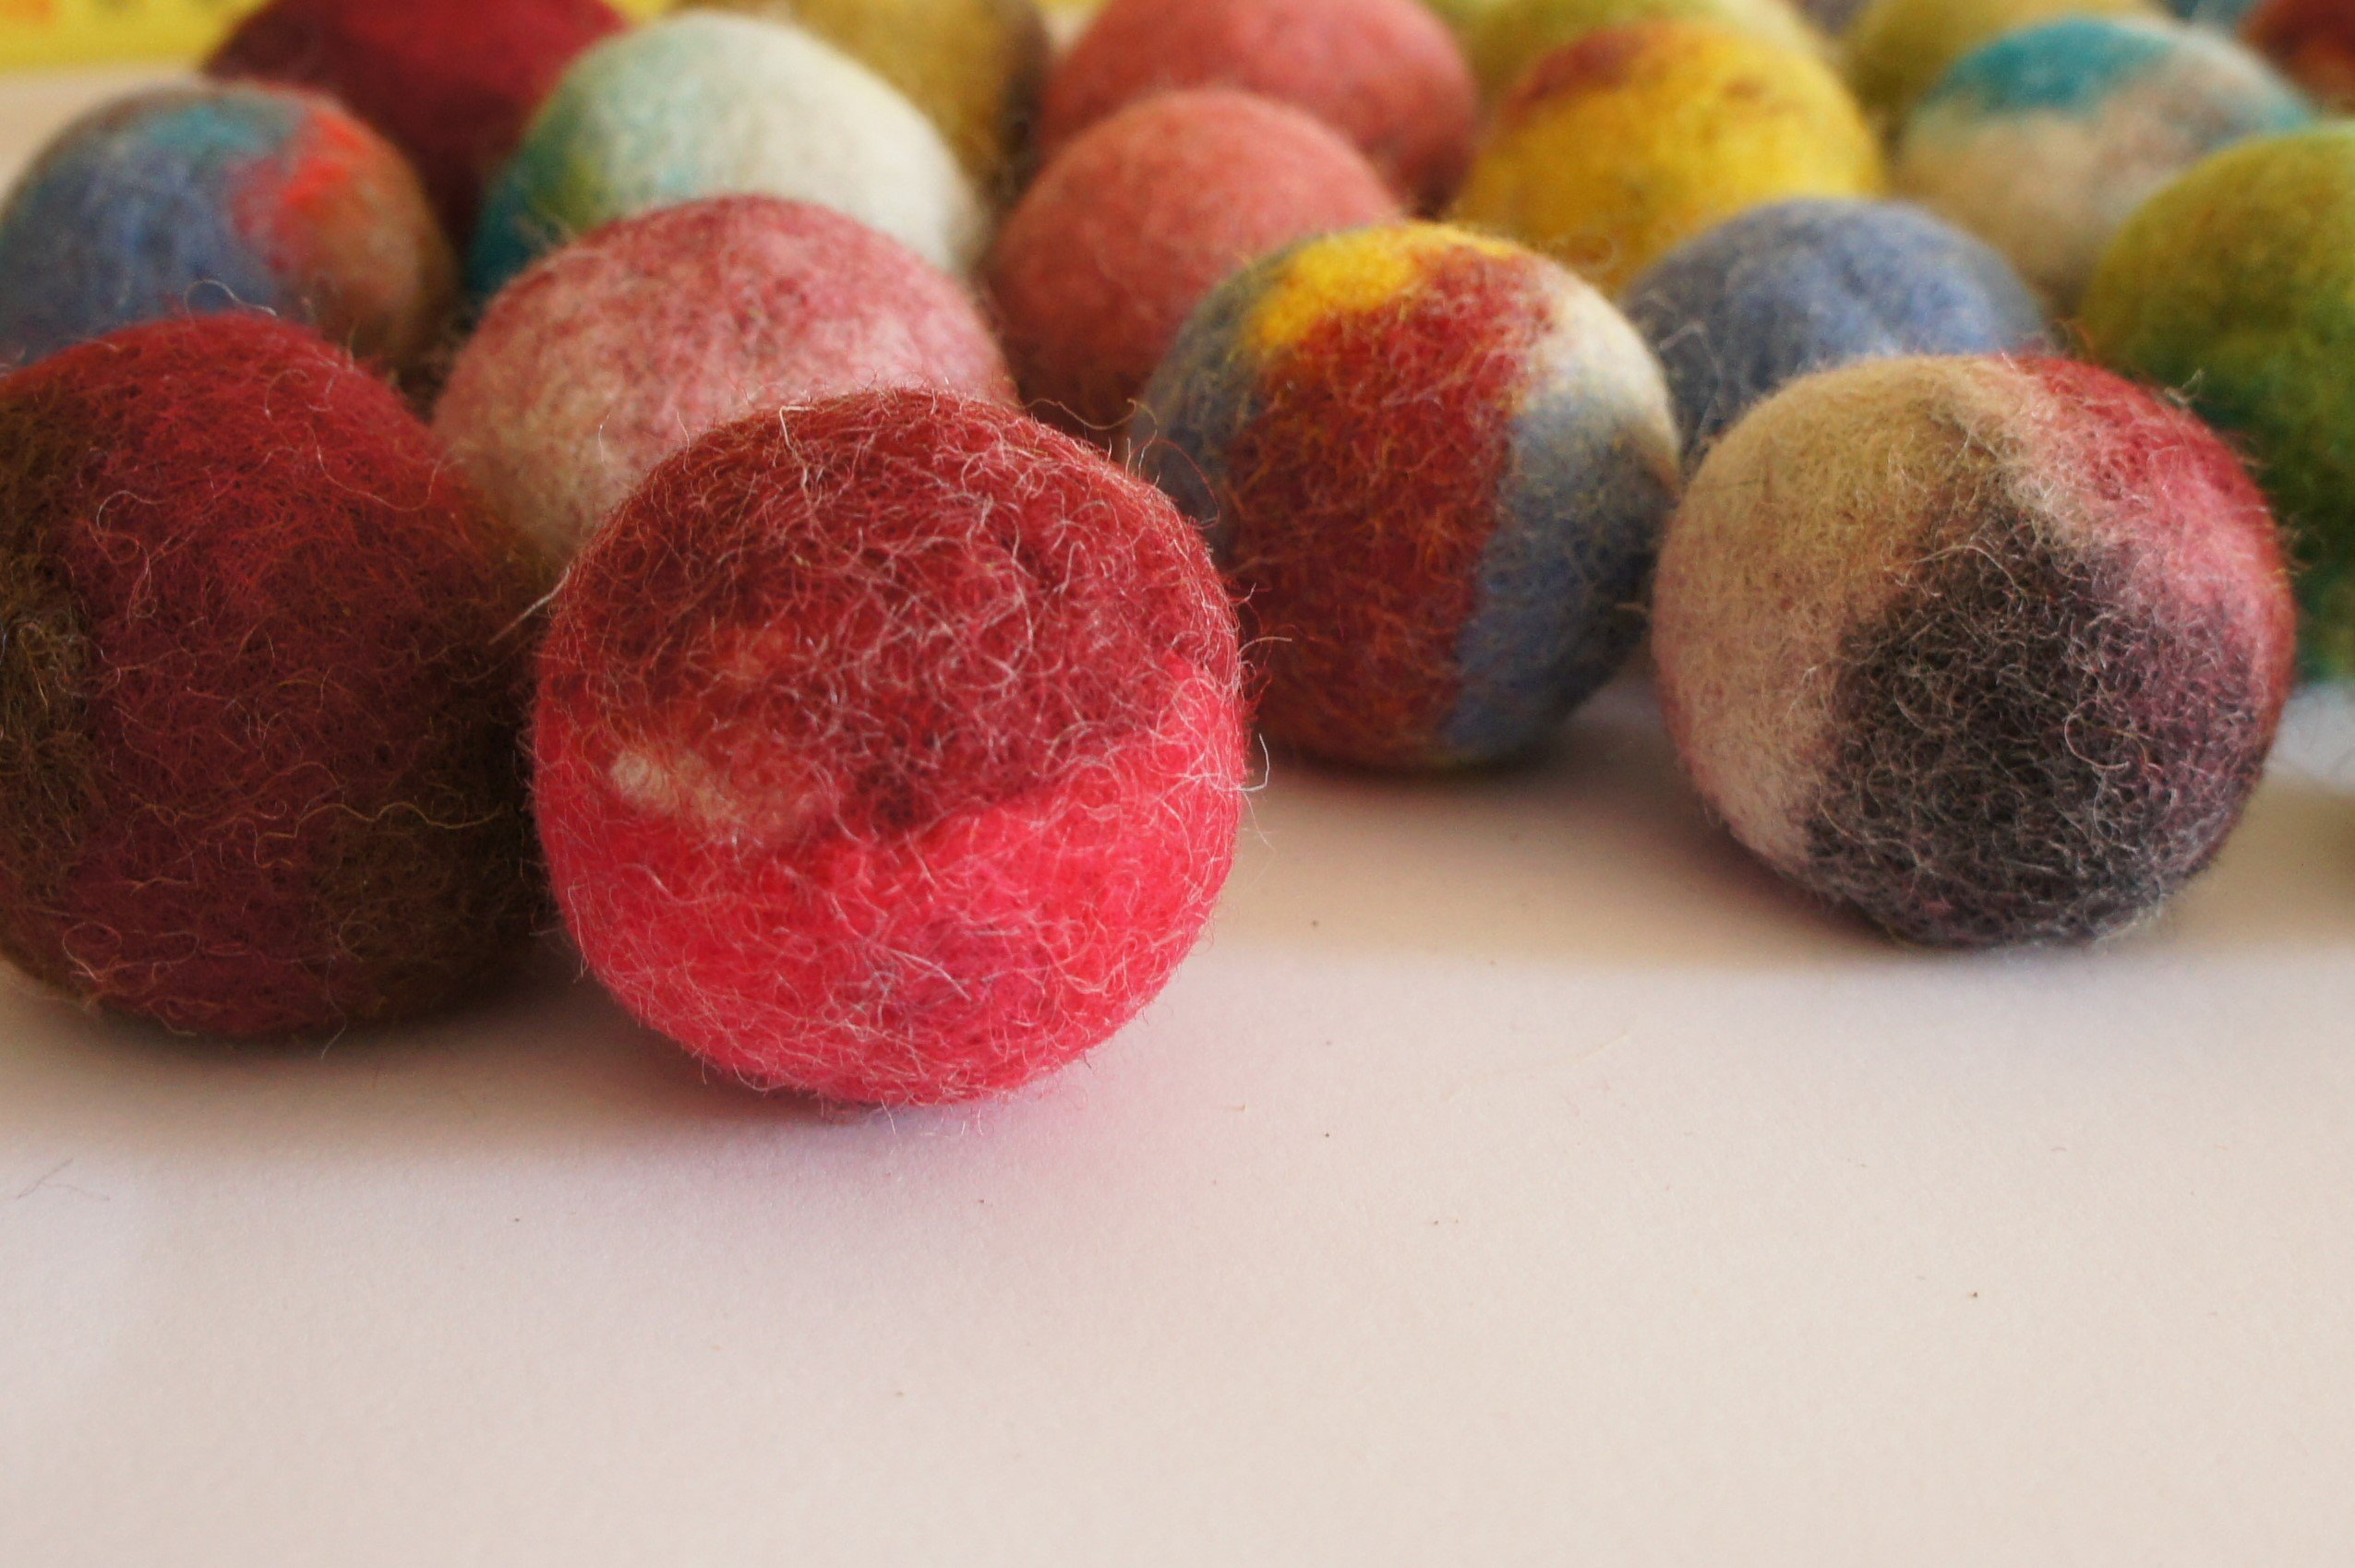 Cat Toy, 10 Felted Wool Balls. Handmade From Ecological Wool Made By Kivikis.